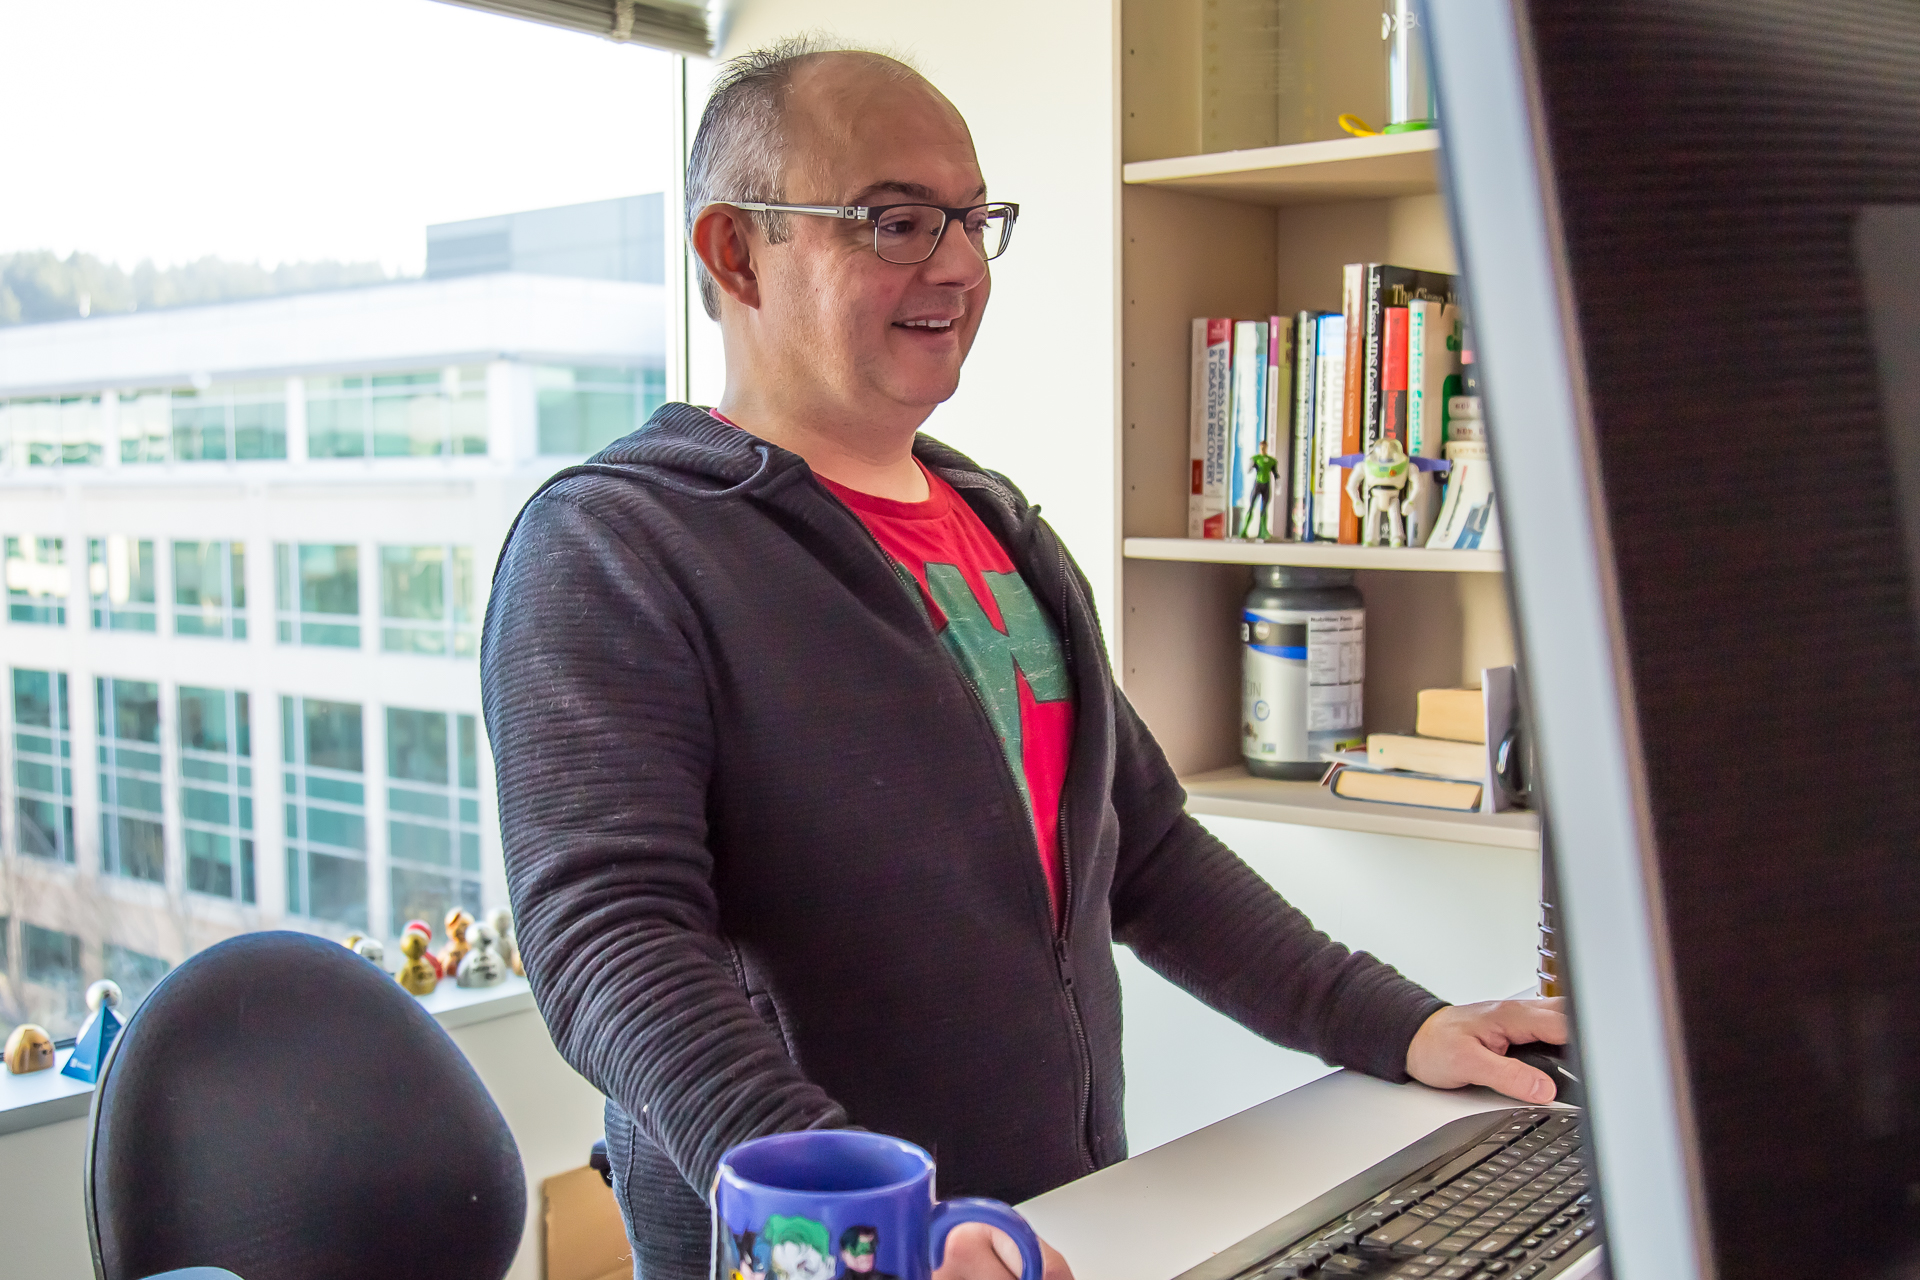 Rob Beddard works on his computer in his office.